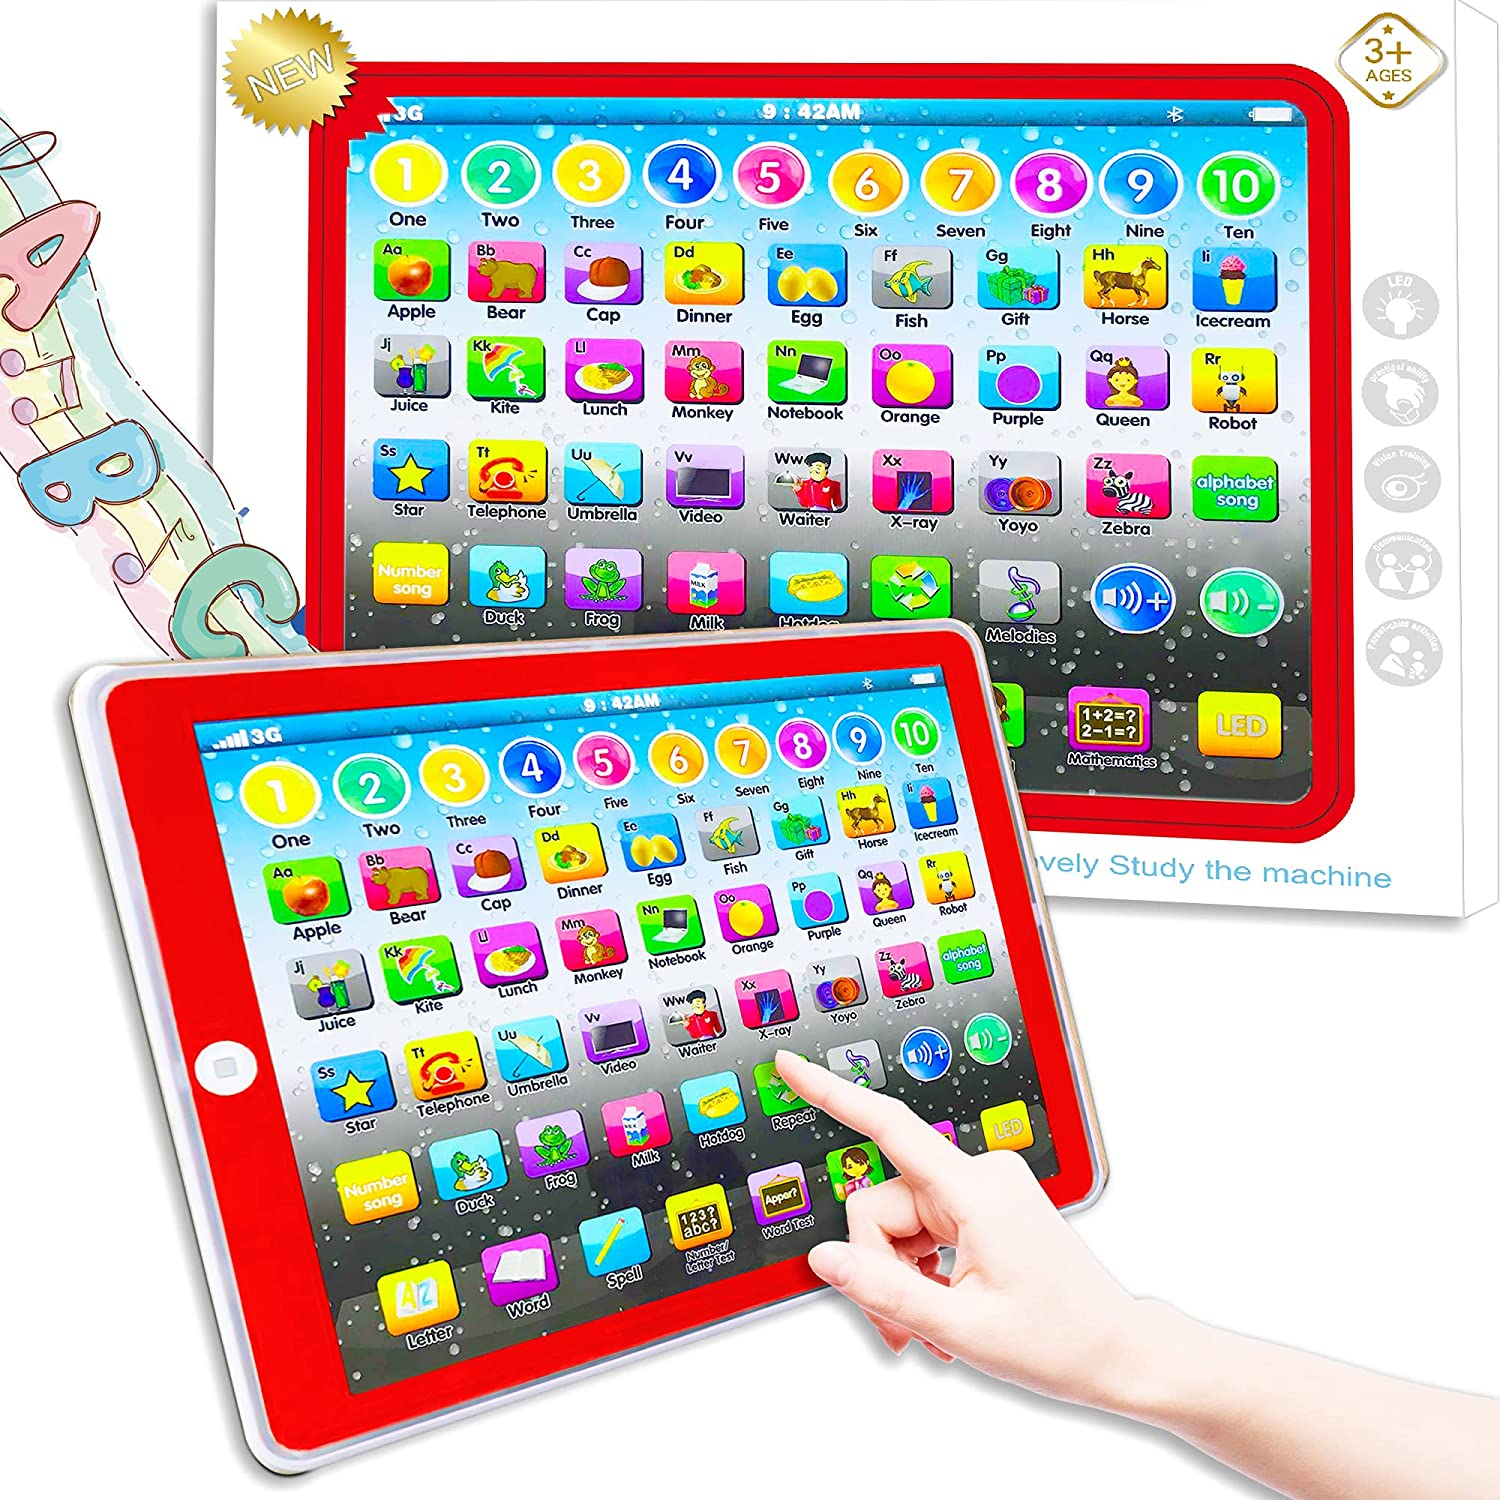 Learning Tablet Toy Max 52% Ranking TOP2 OFF Baby Education Child Early Preschool